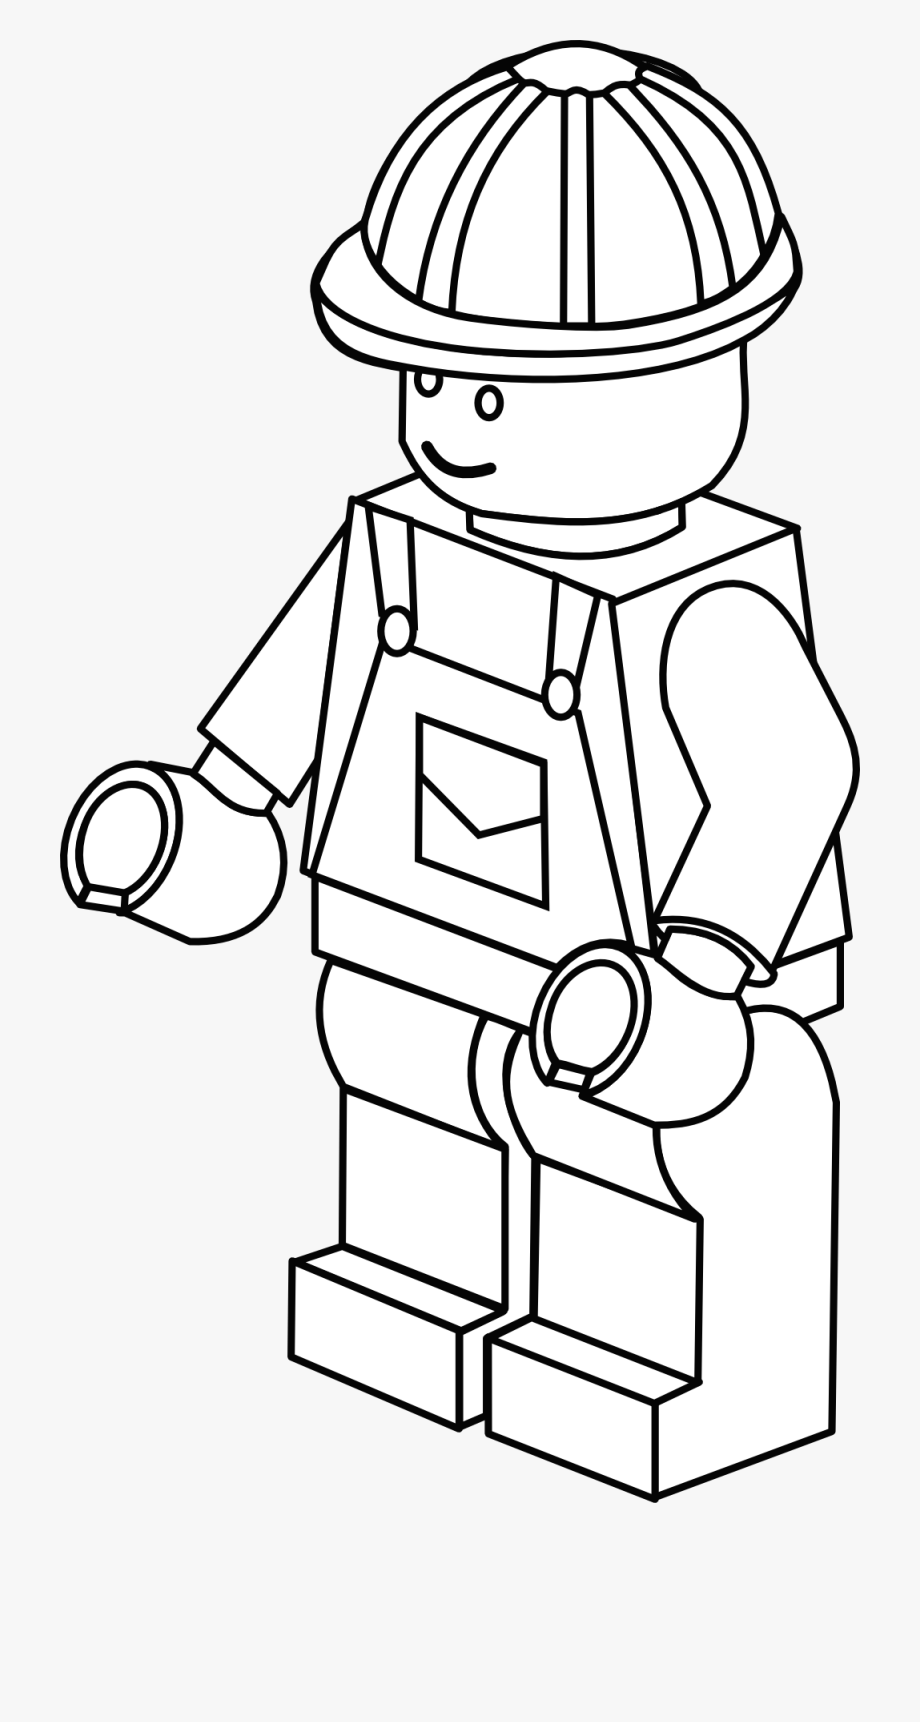 lego coloring pages free lego ninjago coloring pages best coloring pages for kids coloring lego pages free